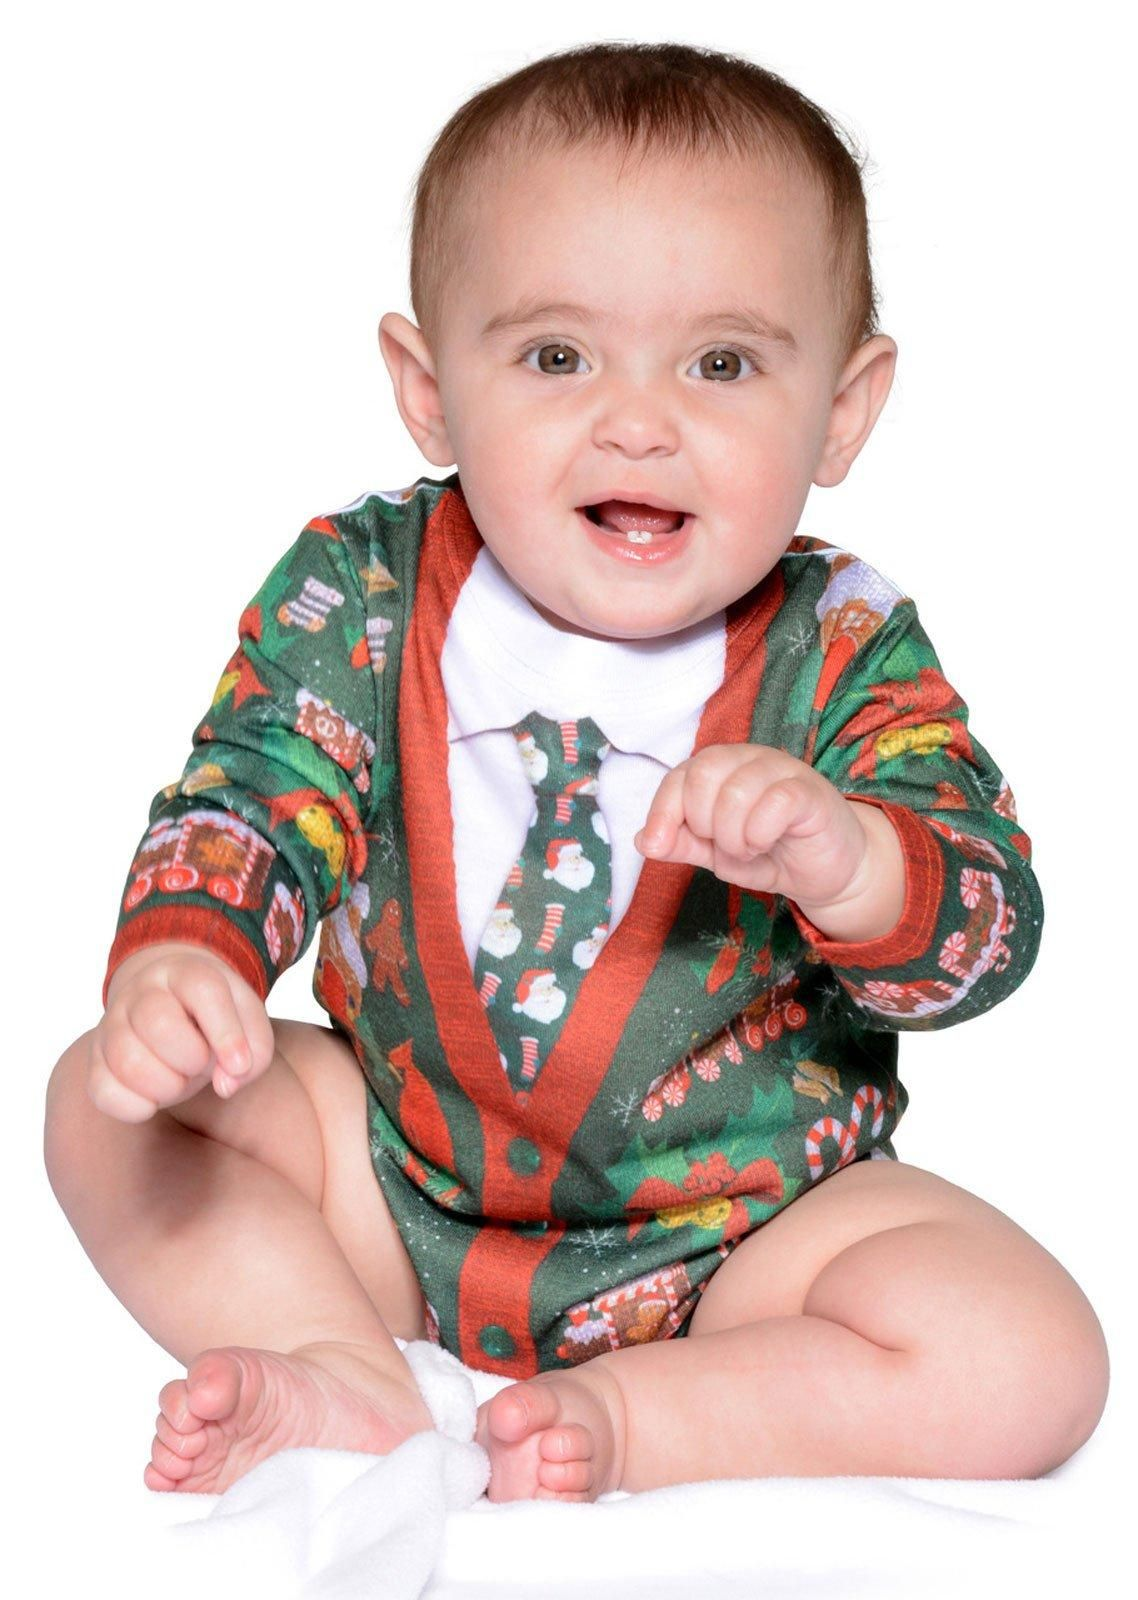 Ugly Christmas Cardigan Romper For Babies From Buycostumescom